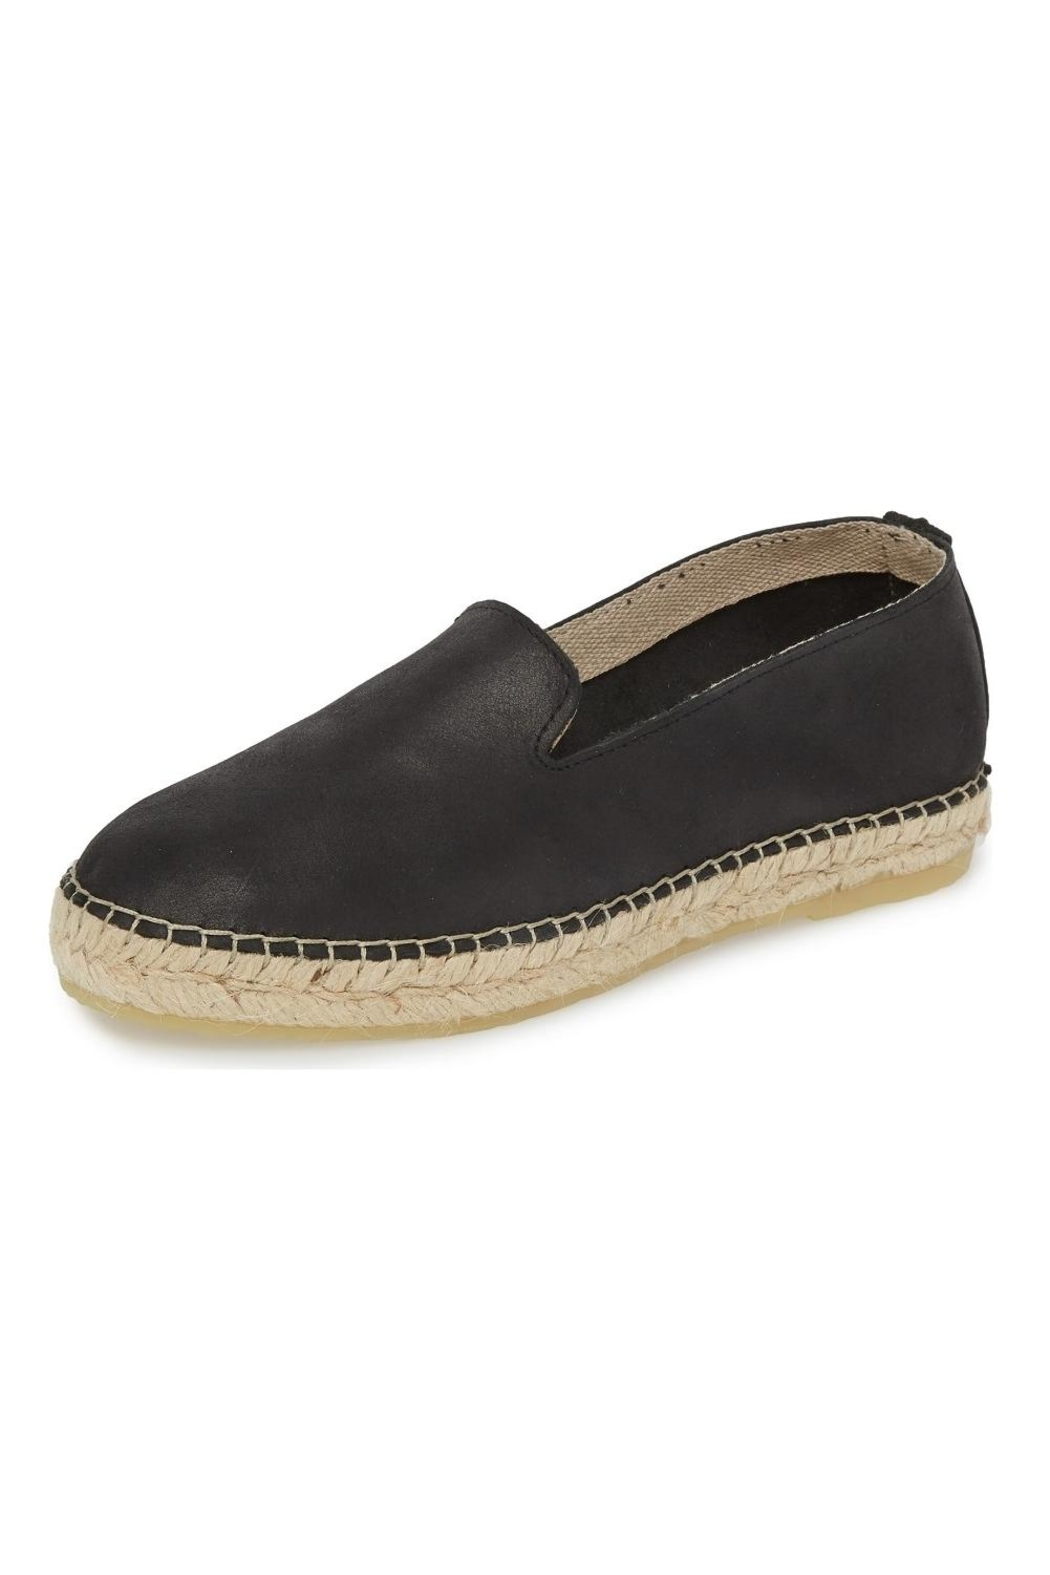 Free People Laurel Canyon Espadrille - Front Cropped Image